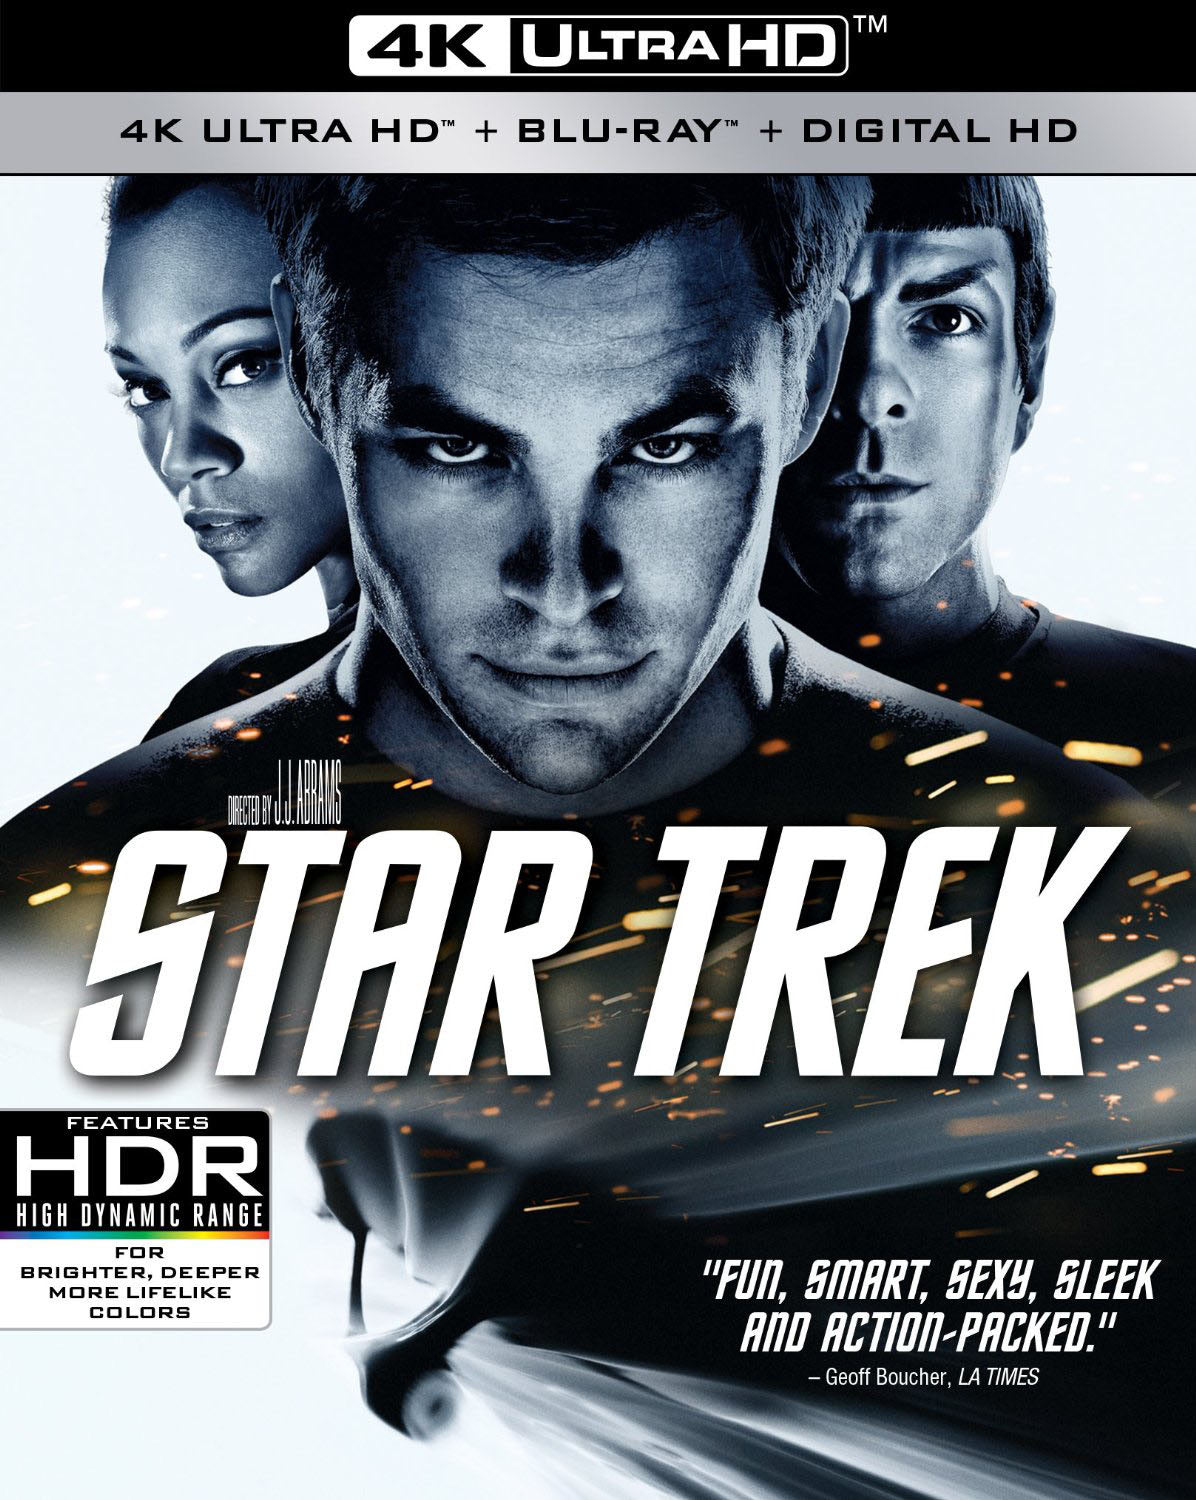 Star Trek (2009) iTunes 4K redemption only